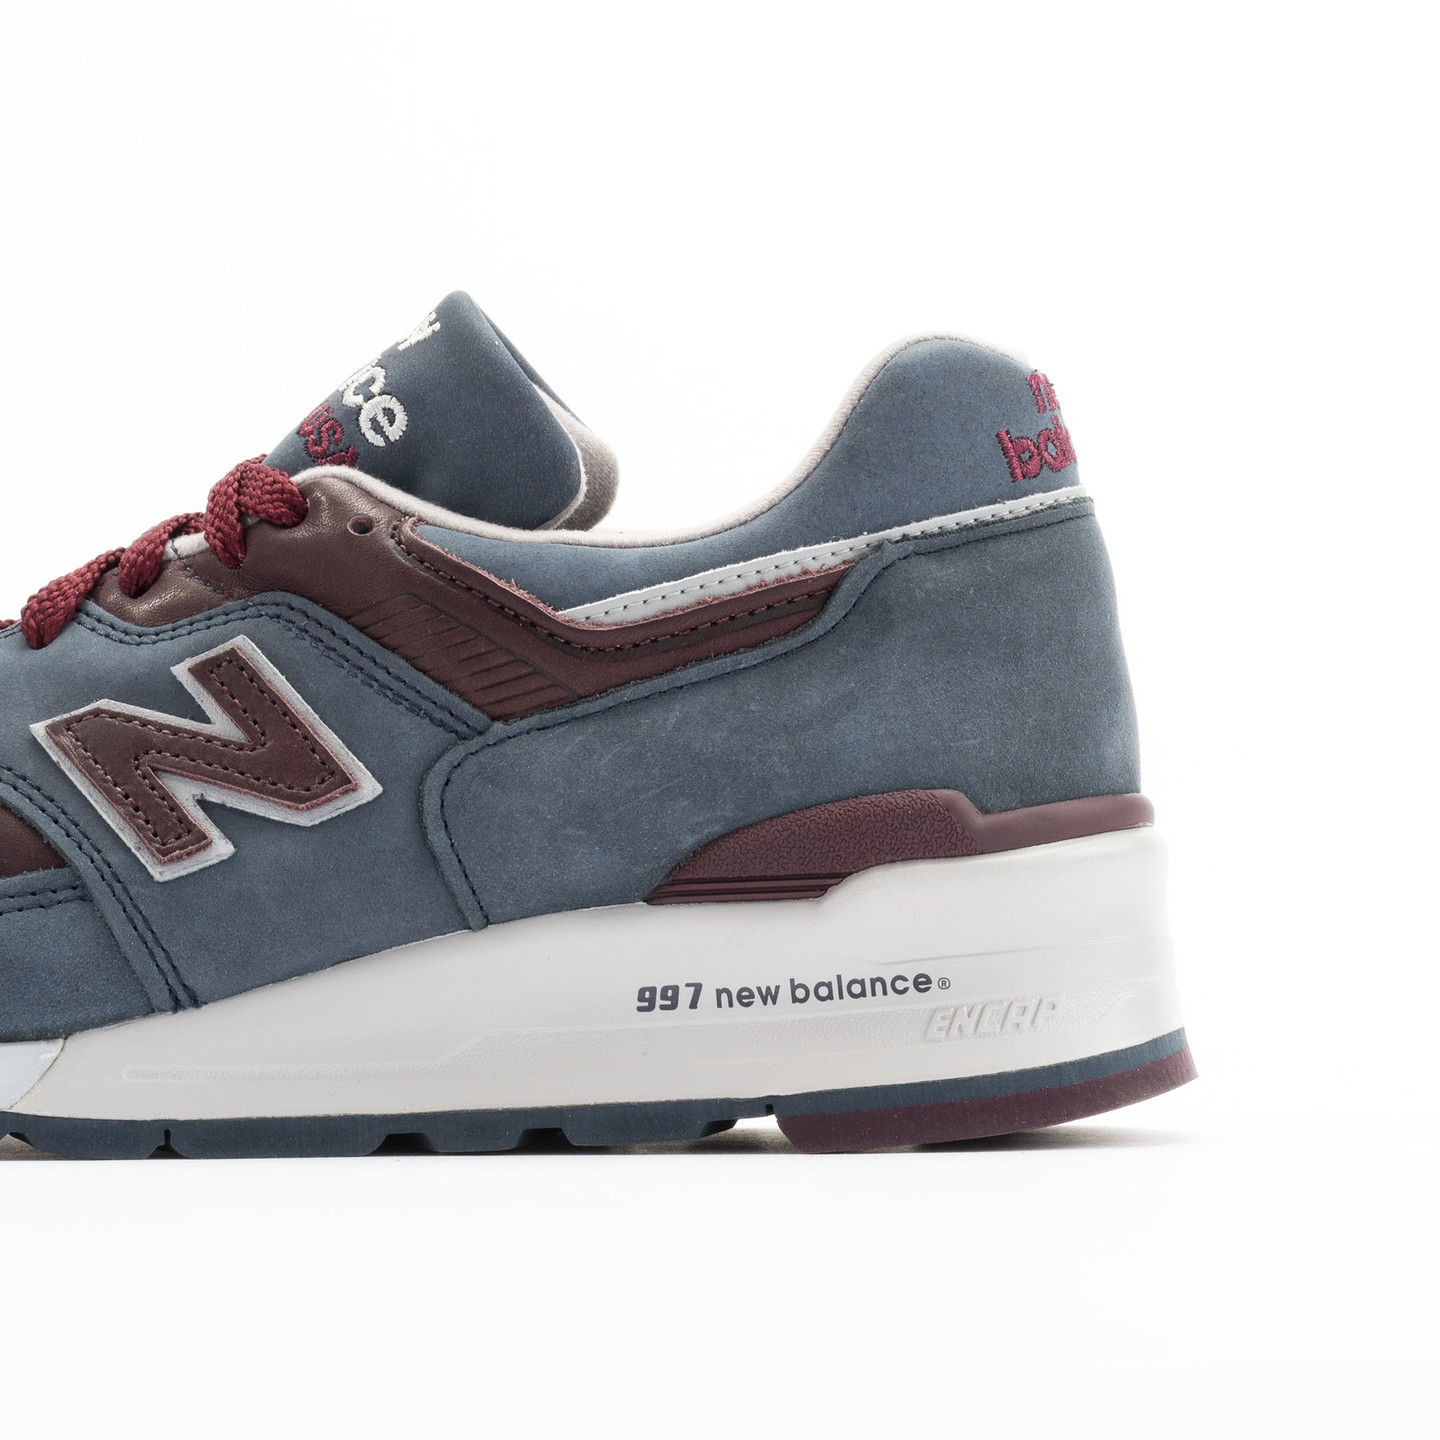 New Balance M997 DGM - Made in USA Grey Steel / Burgundy M997DGM-42.5